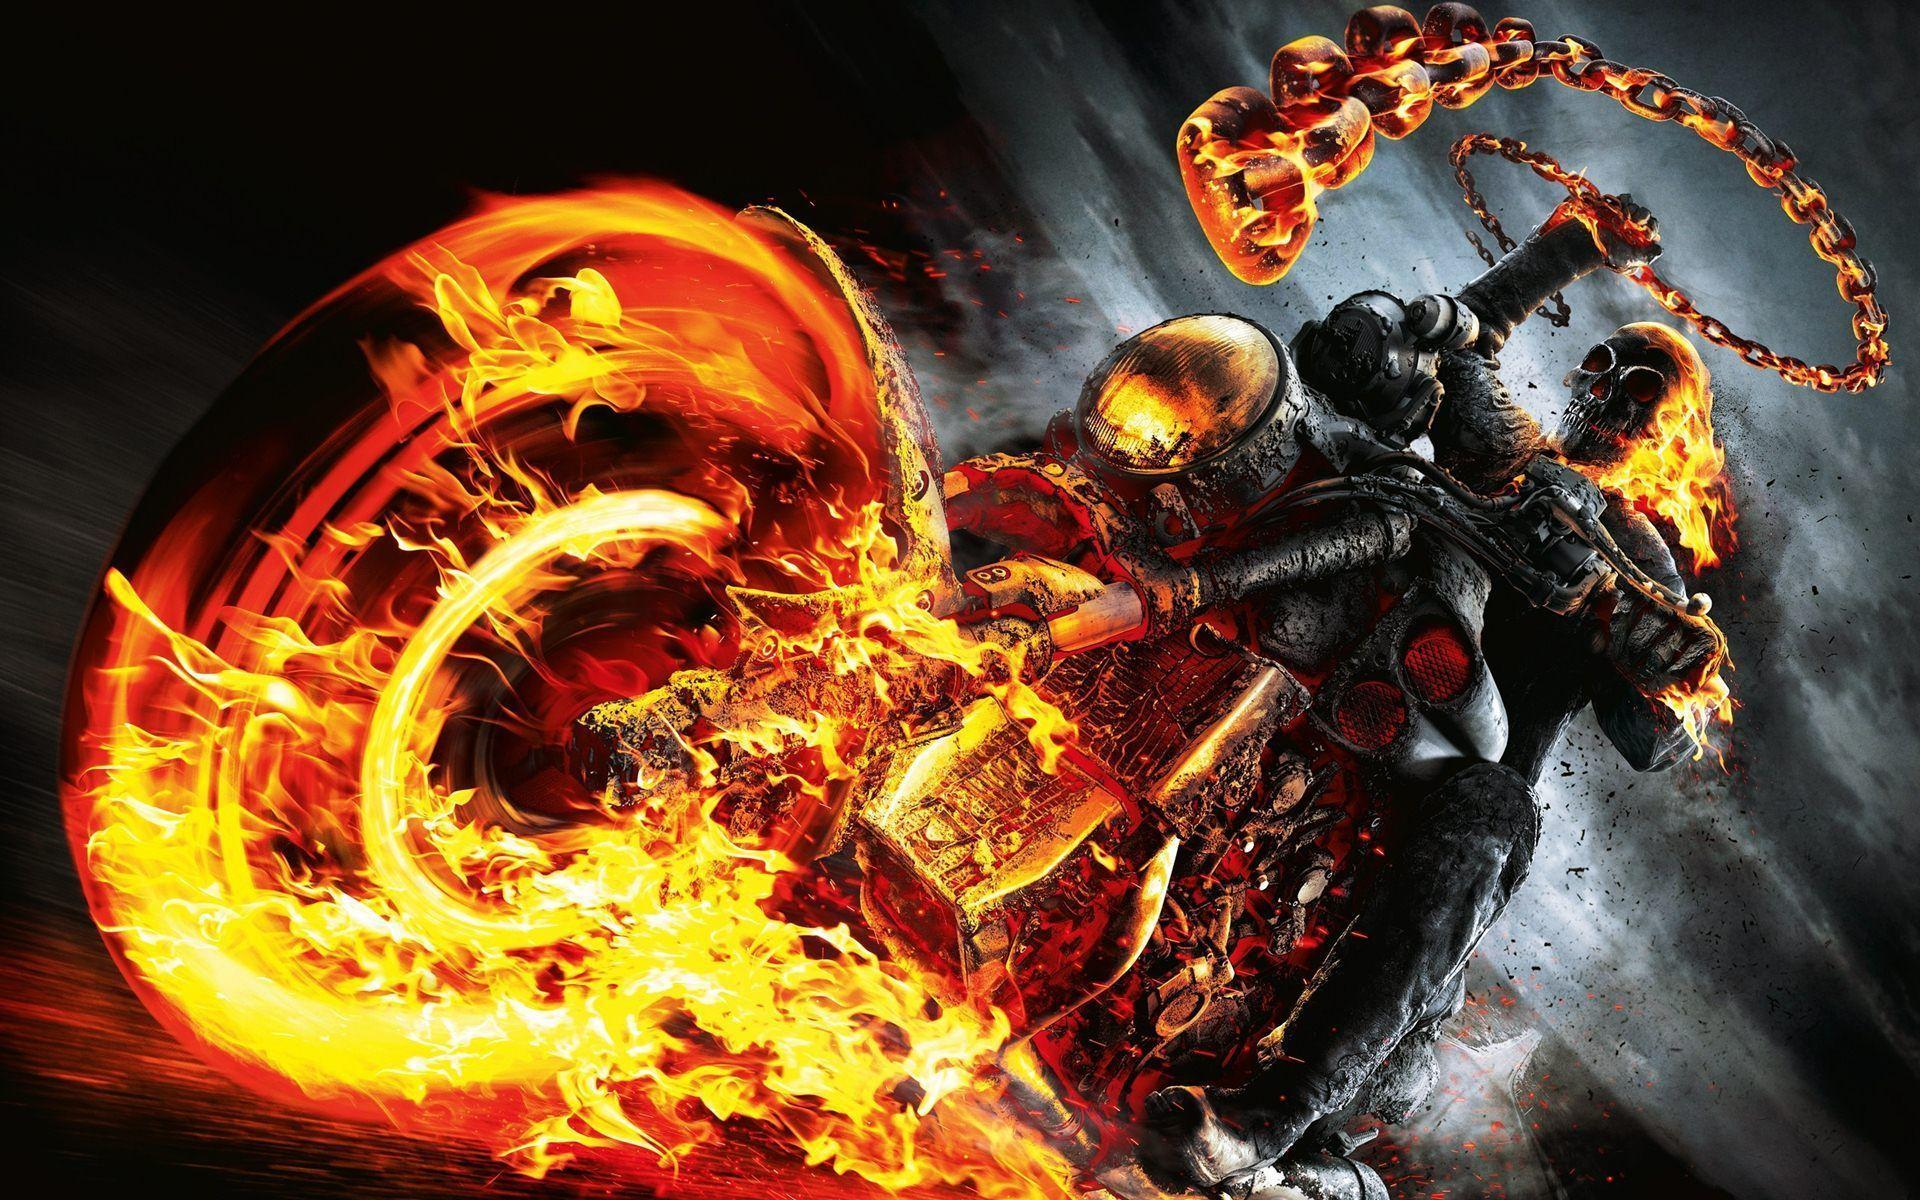 Ghost Rider Spirit Of Vengeance Skull Fire Bike Wallpapers